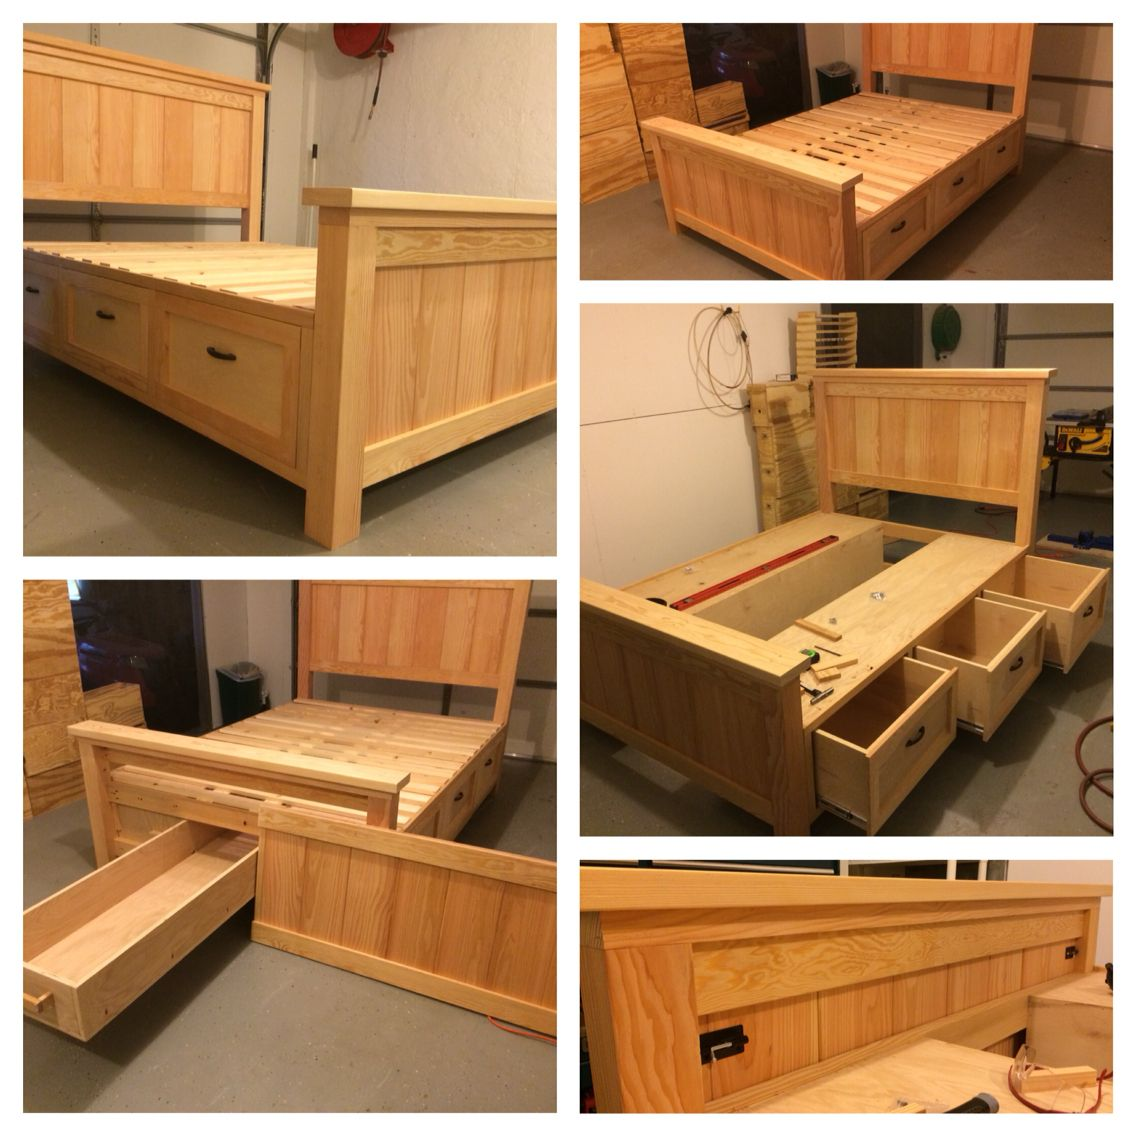 I Just Finished This Build It Is A Queen Farmhouse Storage Bed With